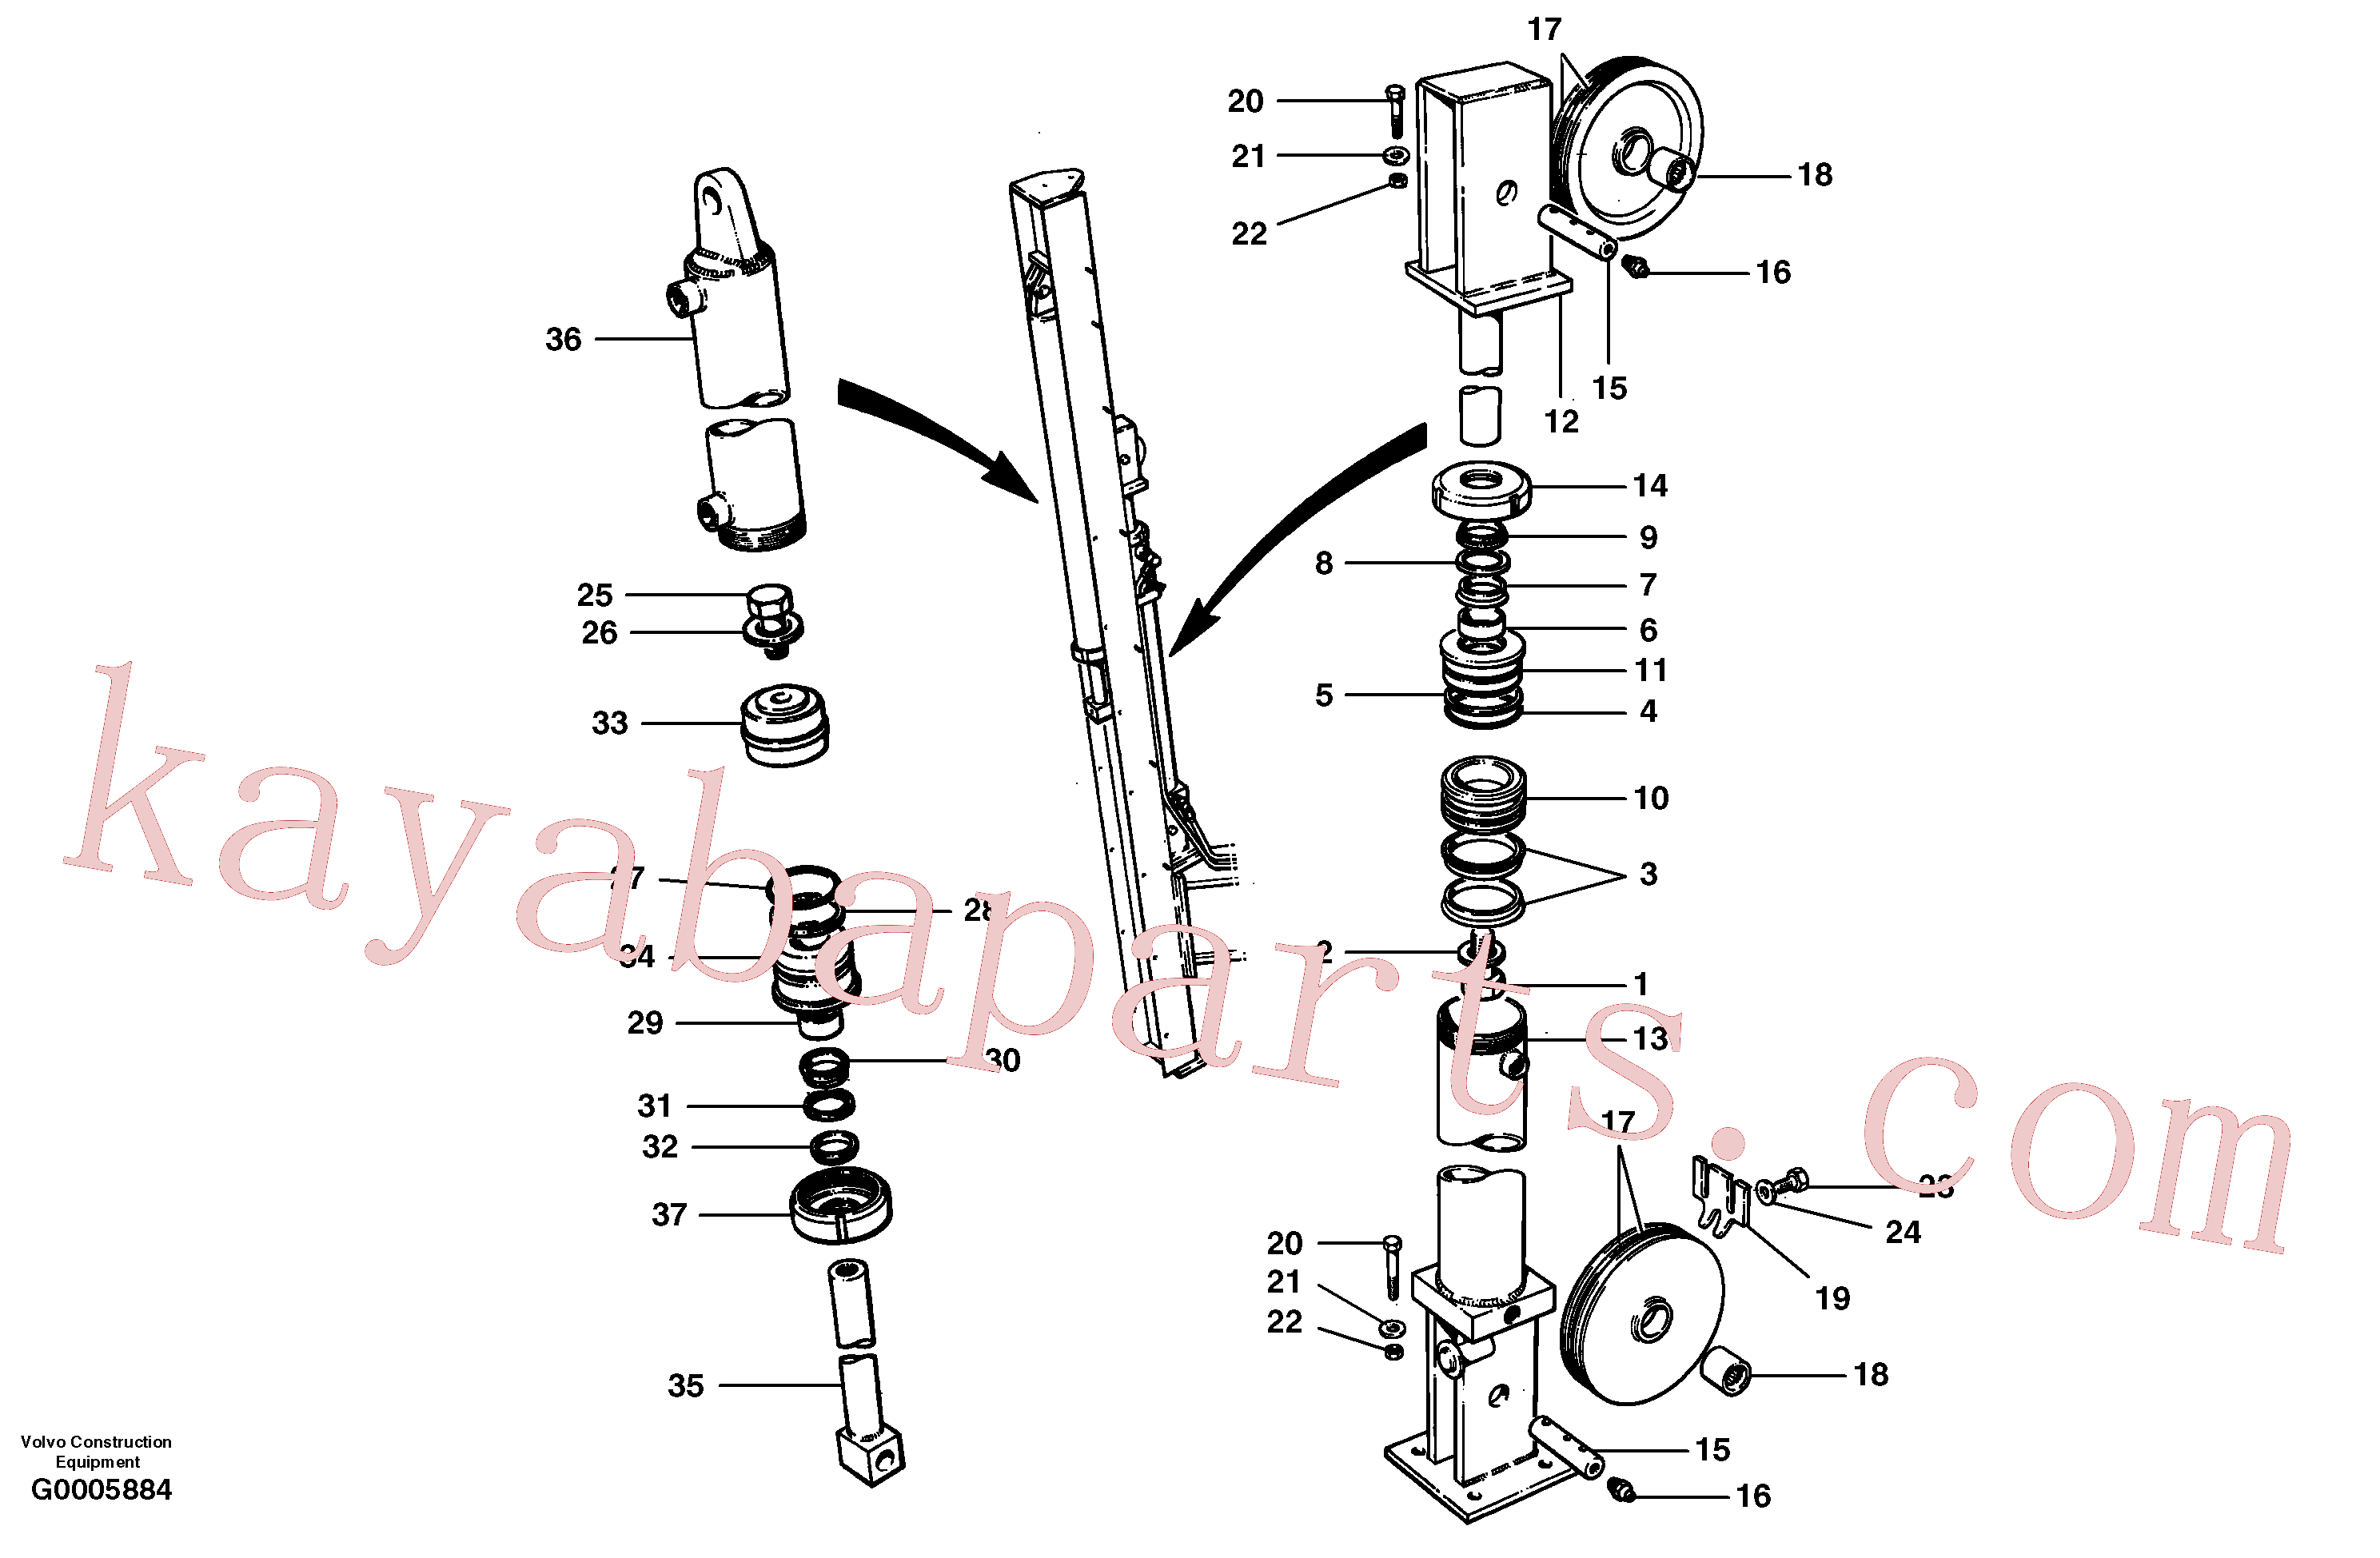 CH44266 for Volvo Wing cylinders - rear mast - cable wing(G0005884 assembly)